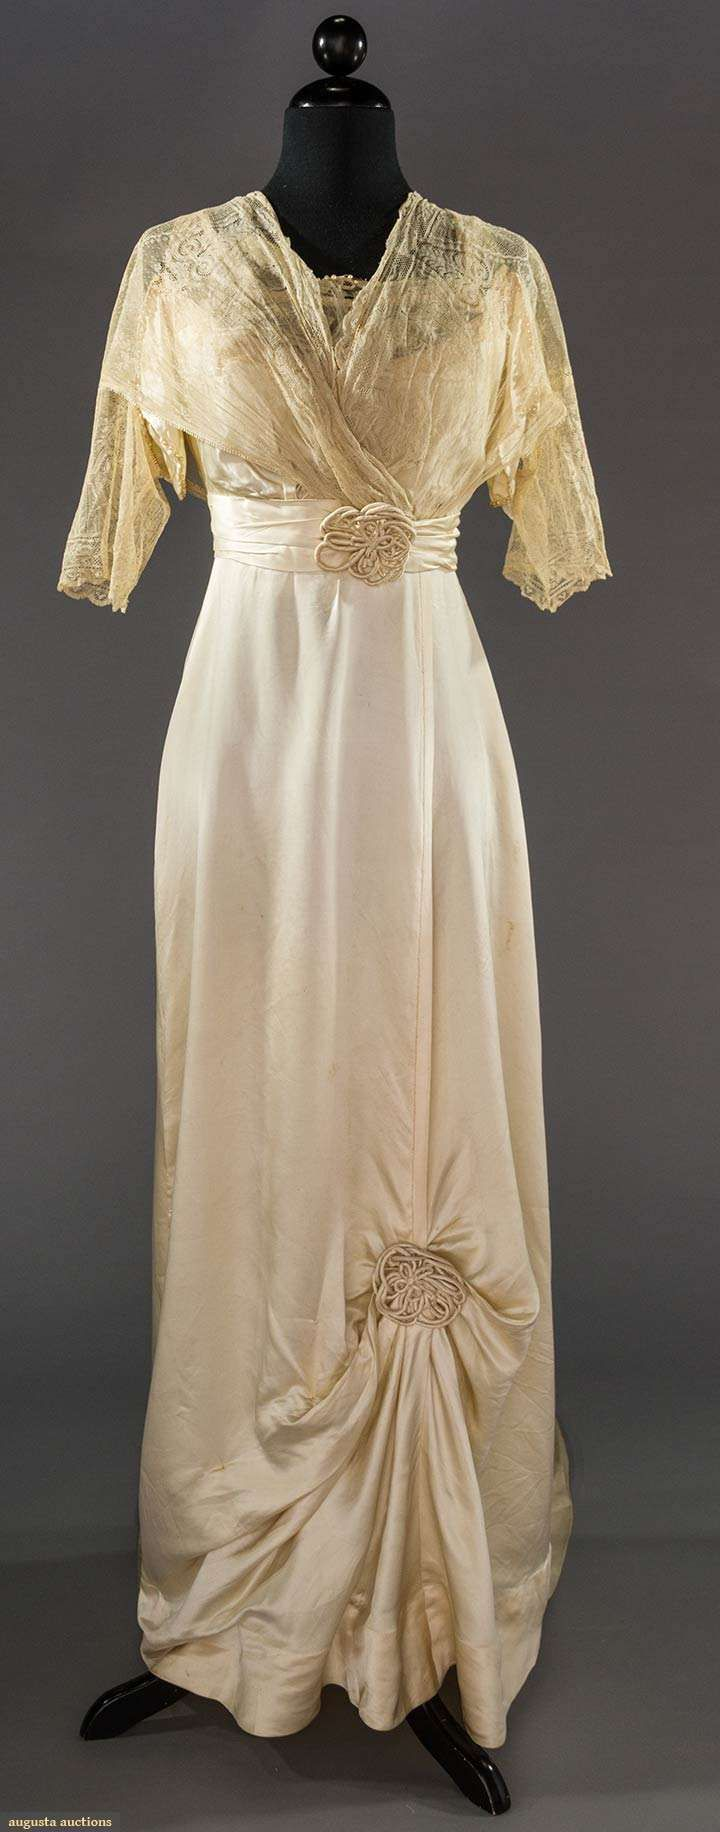 Wedding Gown (image 1) | 1912 | silk charmeuse | Augusta Auctions | May 11, 2016/Lot 2144